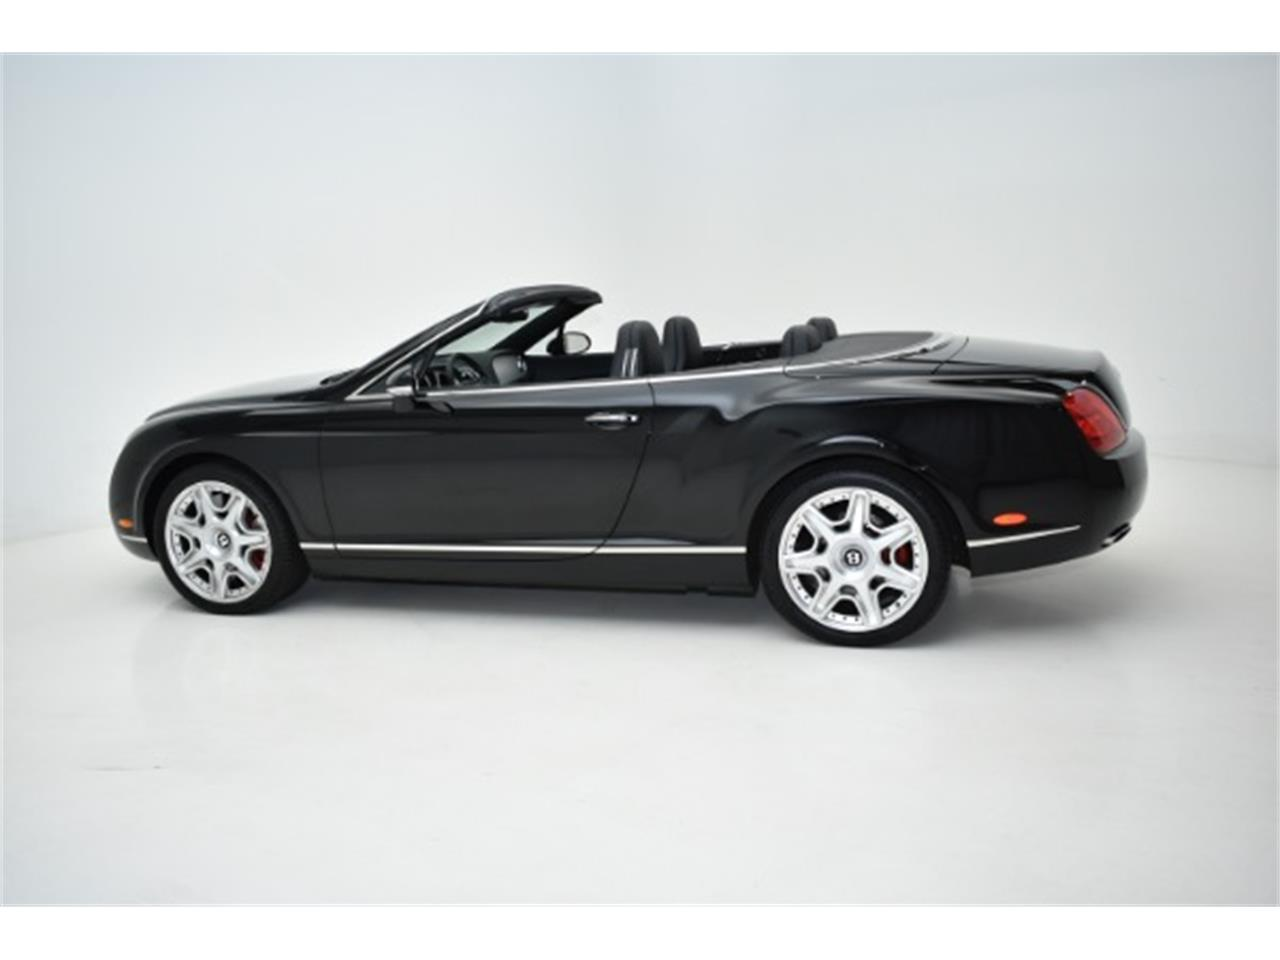 Large Picture of '09 Bentley Continental GTC Mulliner located in New York - $85,000.00 Offered by Champion Motors International - L3NN